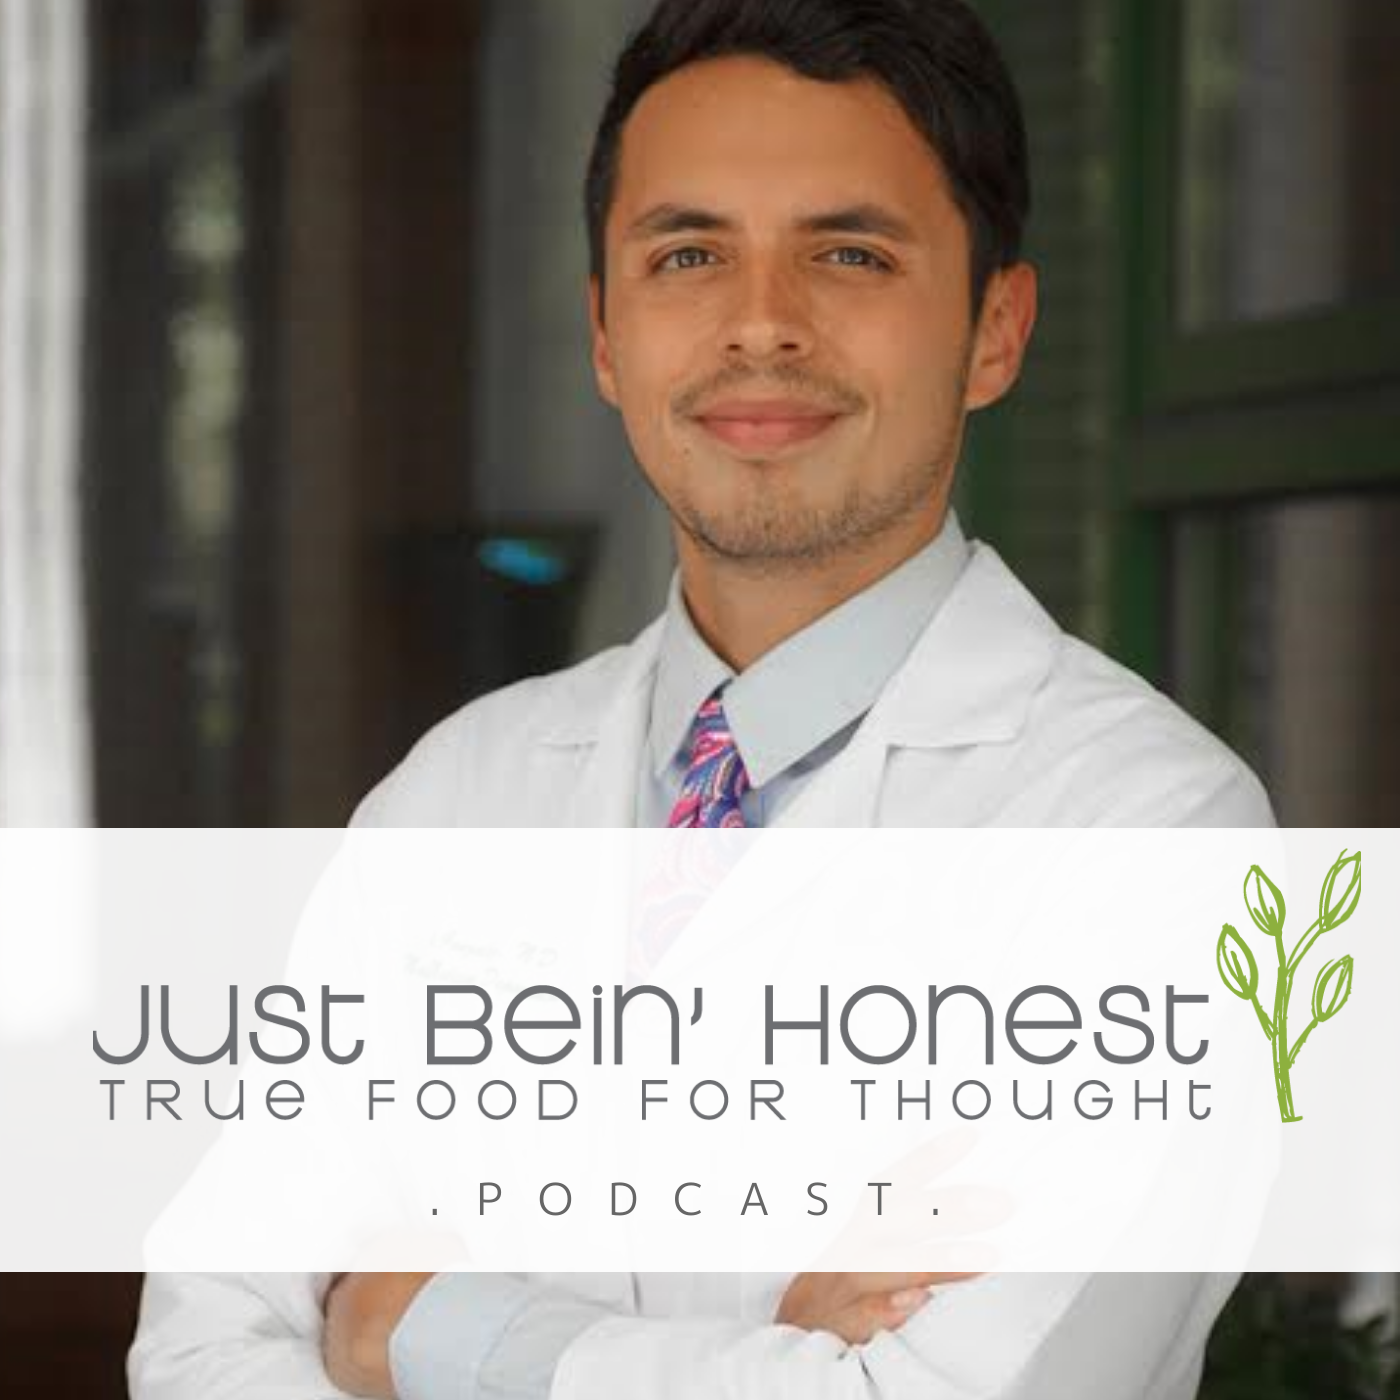 DR. CHRISTIAN GONZALEZ Ep 134 _ Just Bein' Honest - PODCAST